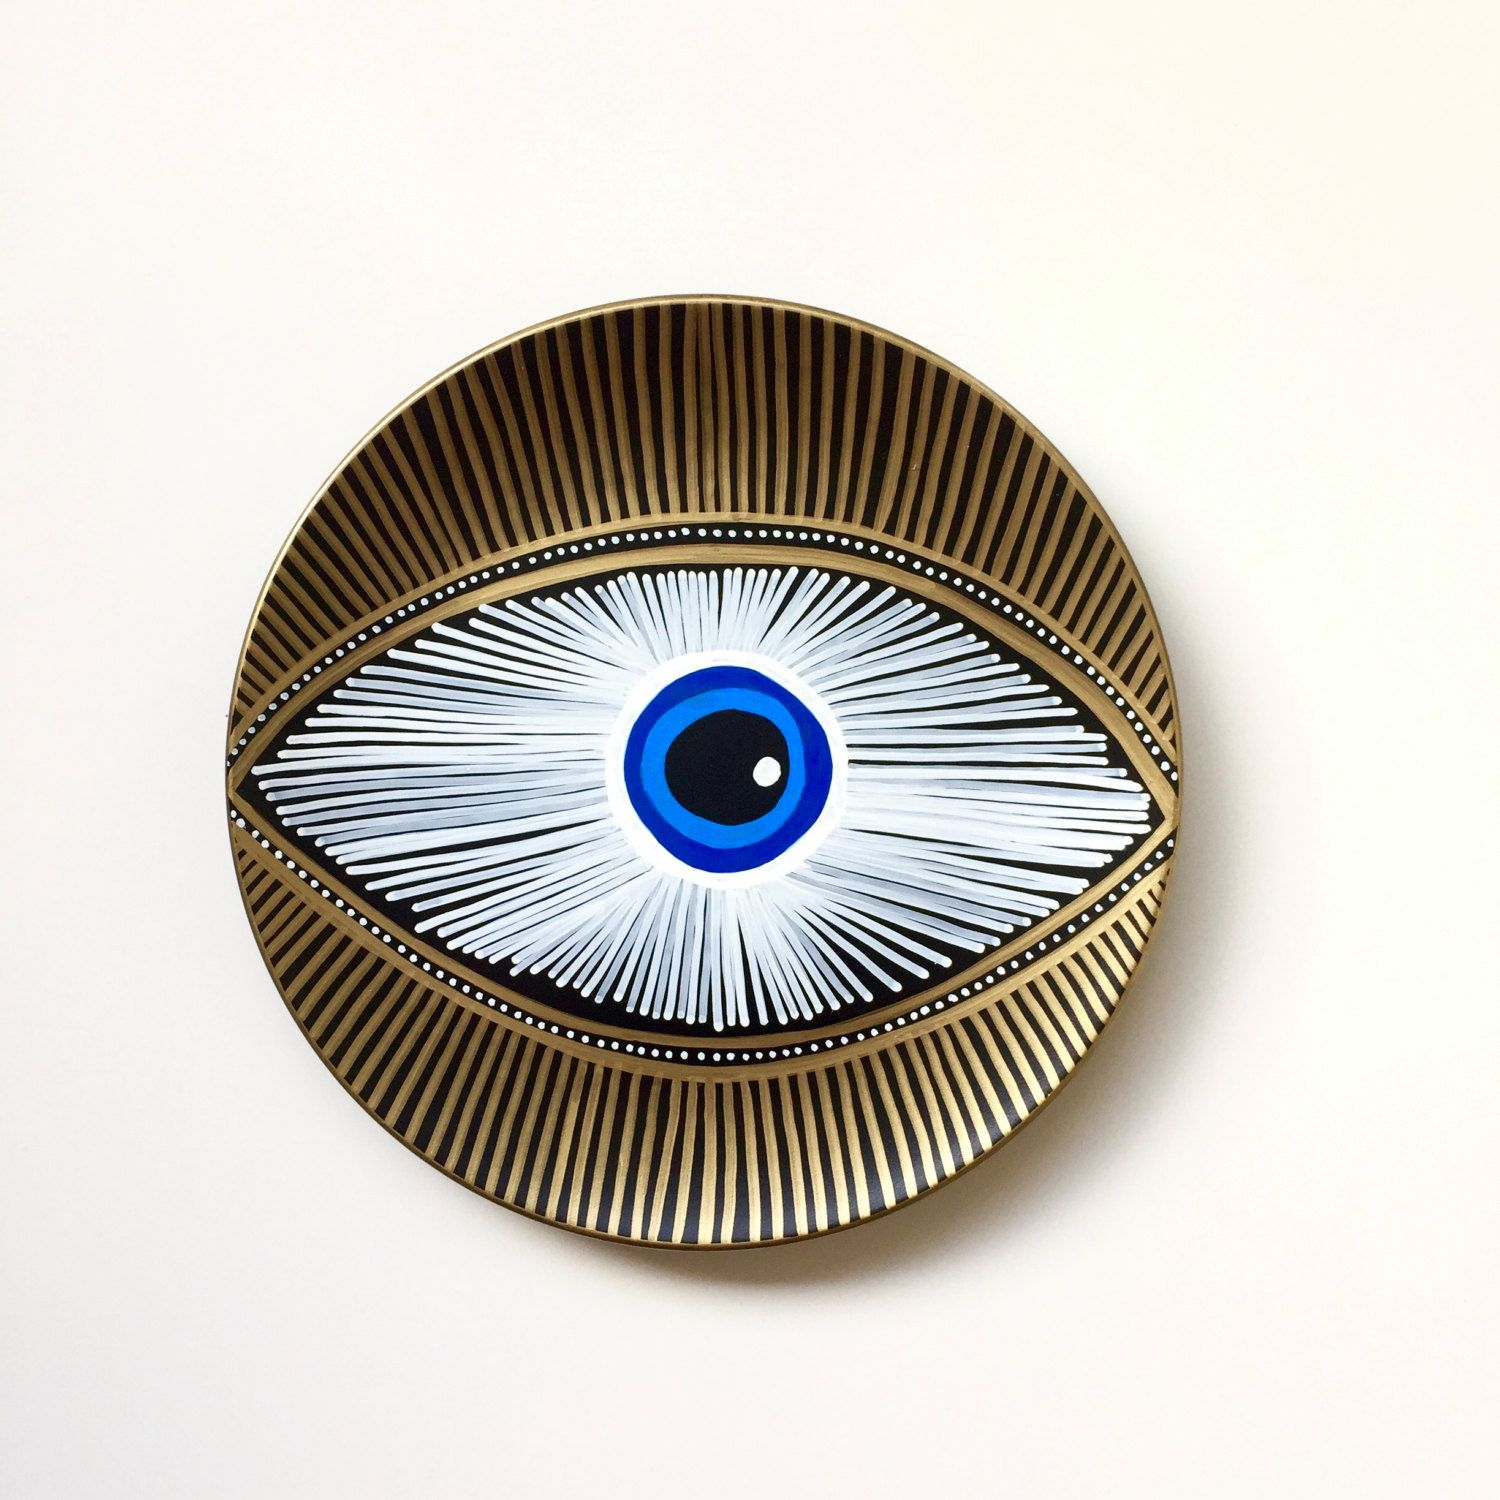 Evil eye decor decorative plate golden evil eye golden and evil eye decor decorative plate golden evil eye golden and blue evil amipublicfo Gallery